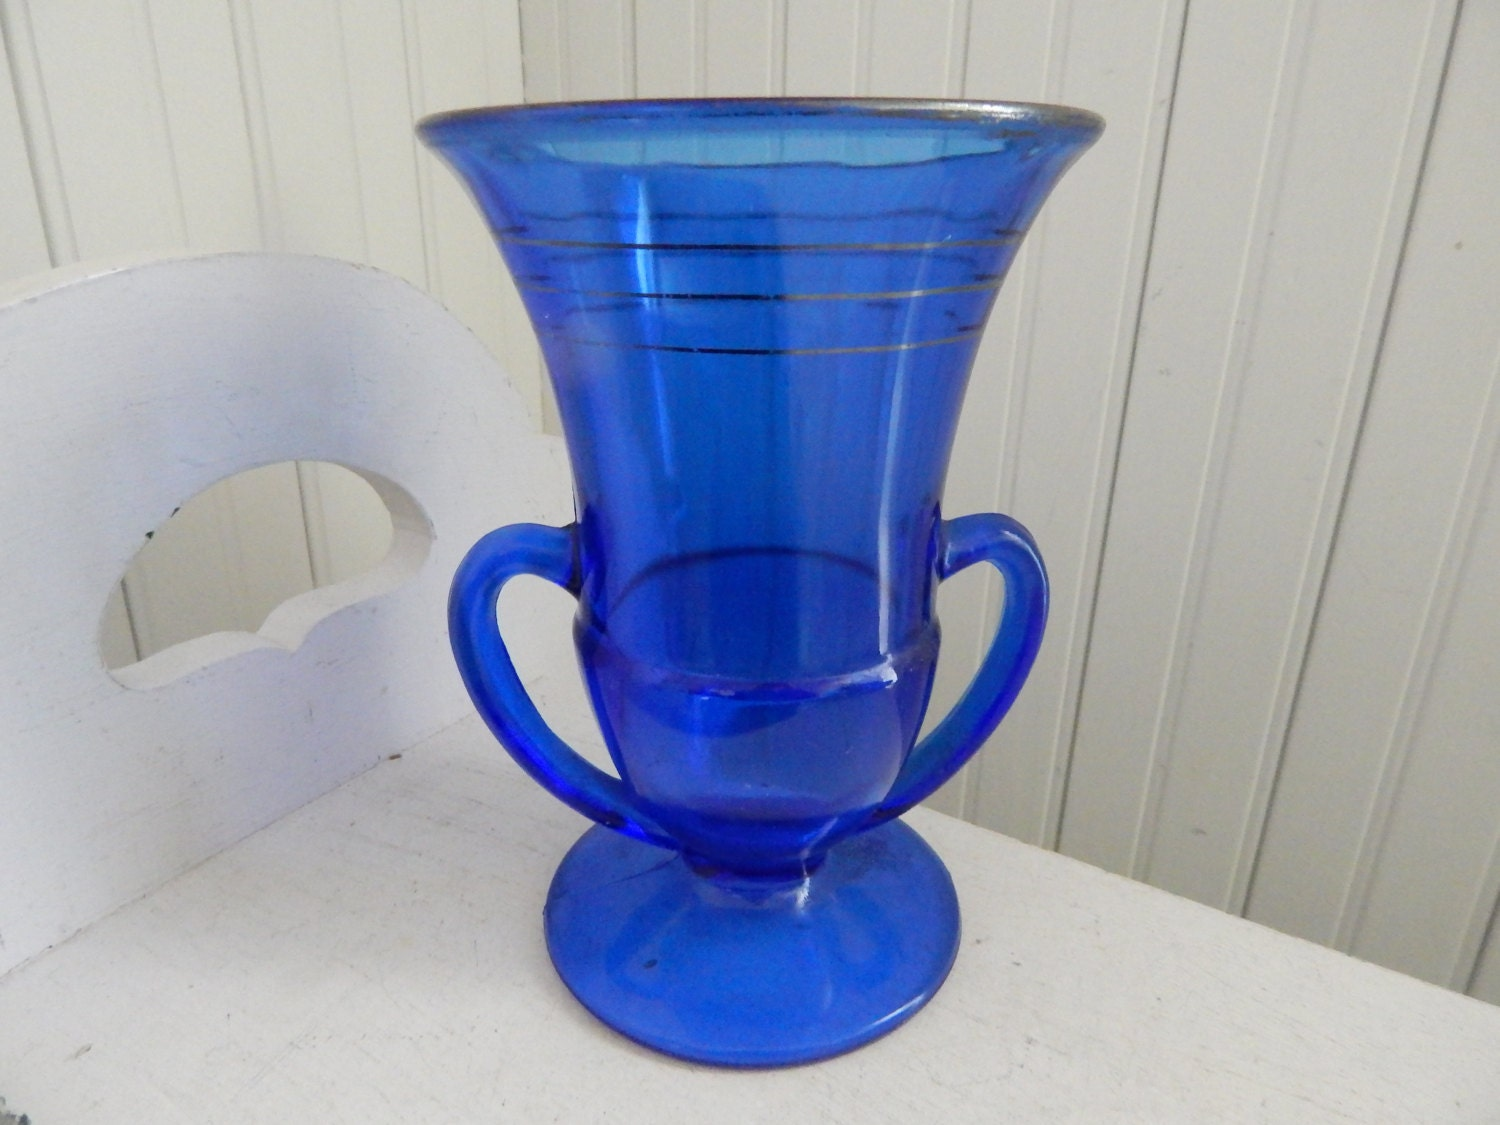 Cobalt blue depression glass double handled footed vase description simply stunning cobalt blue depression glass double handled footed vase floridaeventfo Image collections